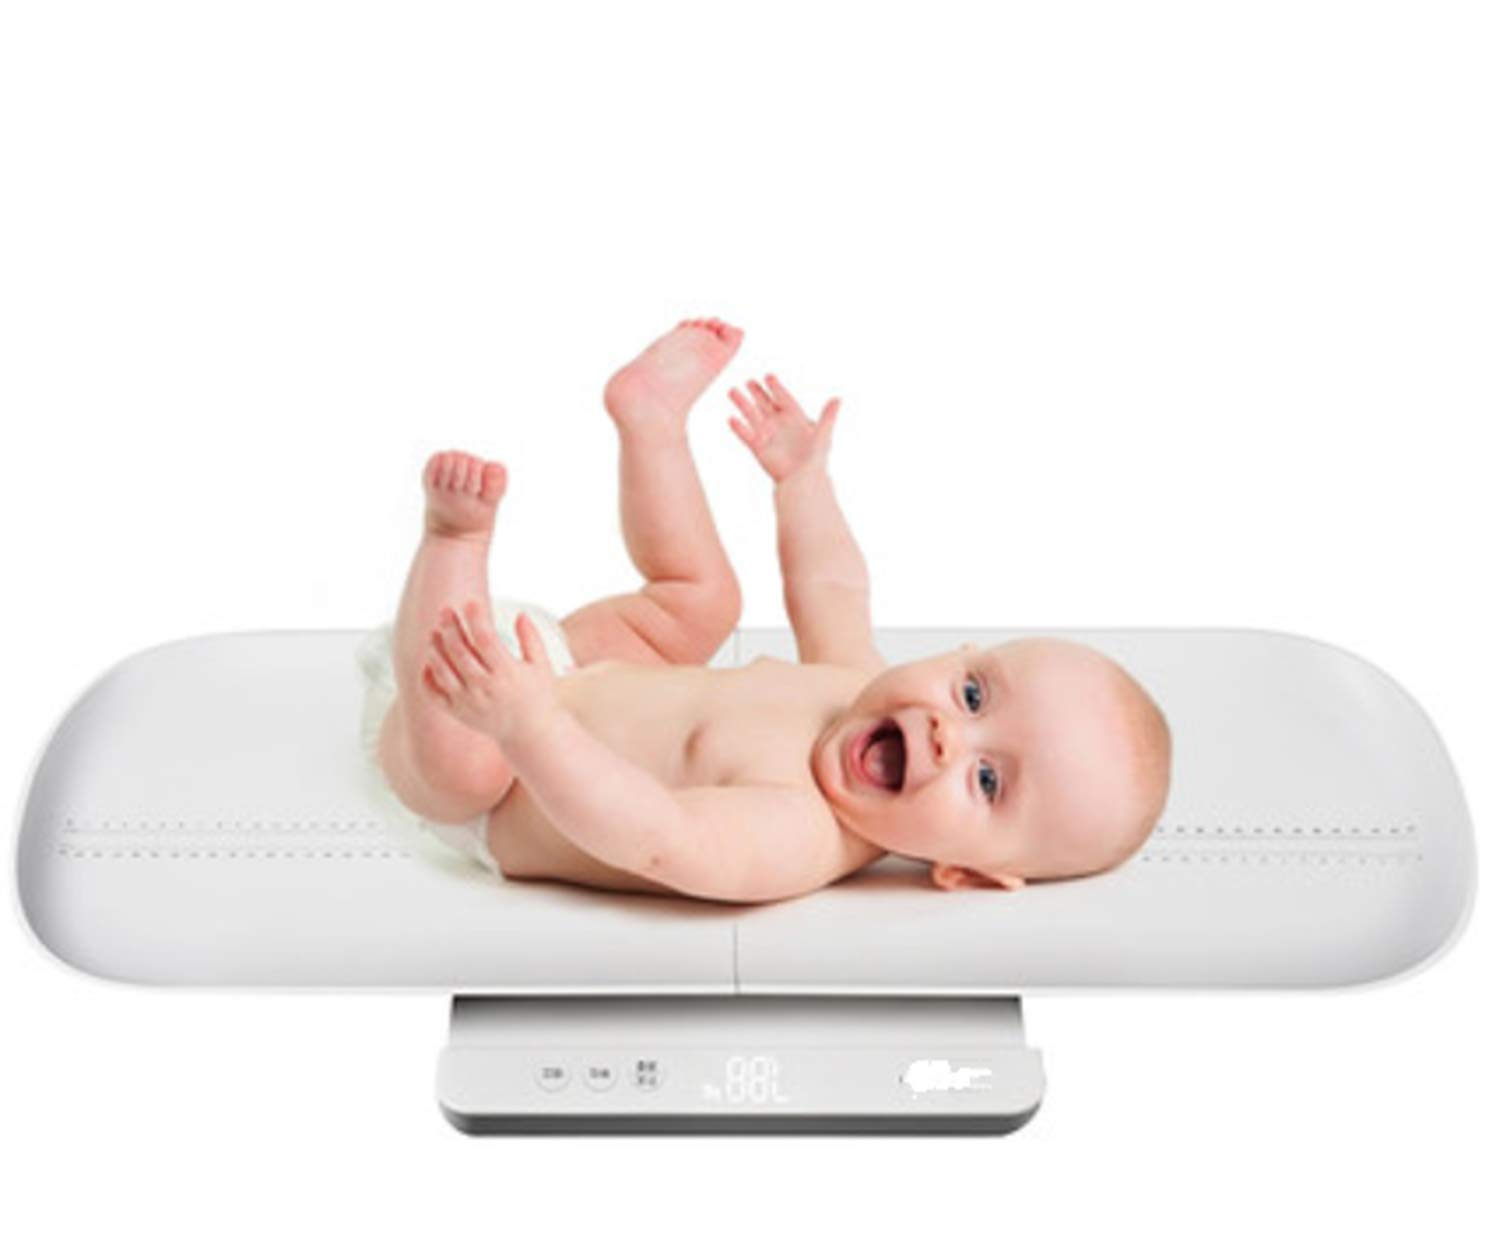 Metene Baby Scale, Multi-Function Digital Scale Measure Toddler/Adult/Puppy/Cat/Dog Weight by Metene